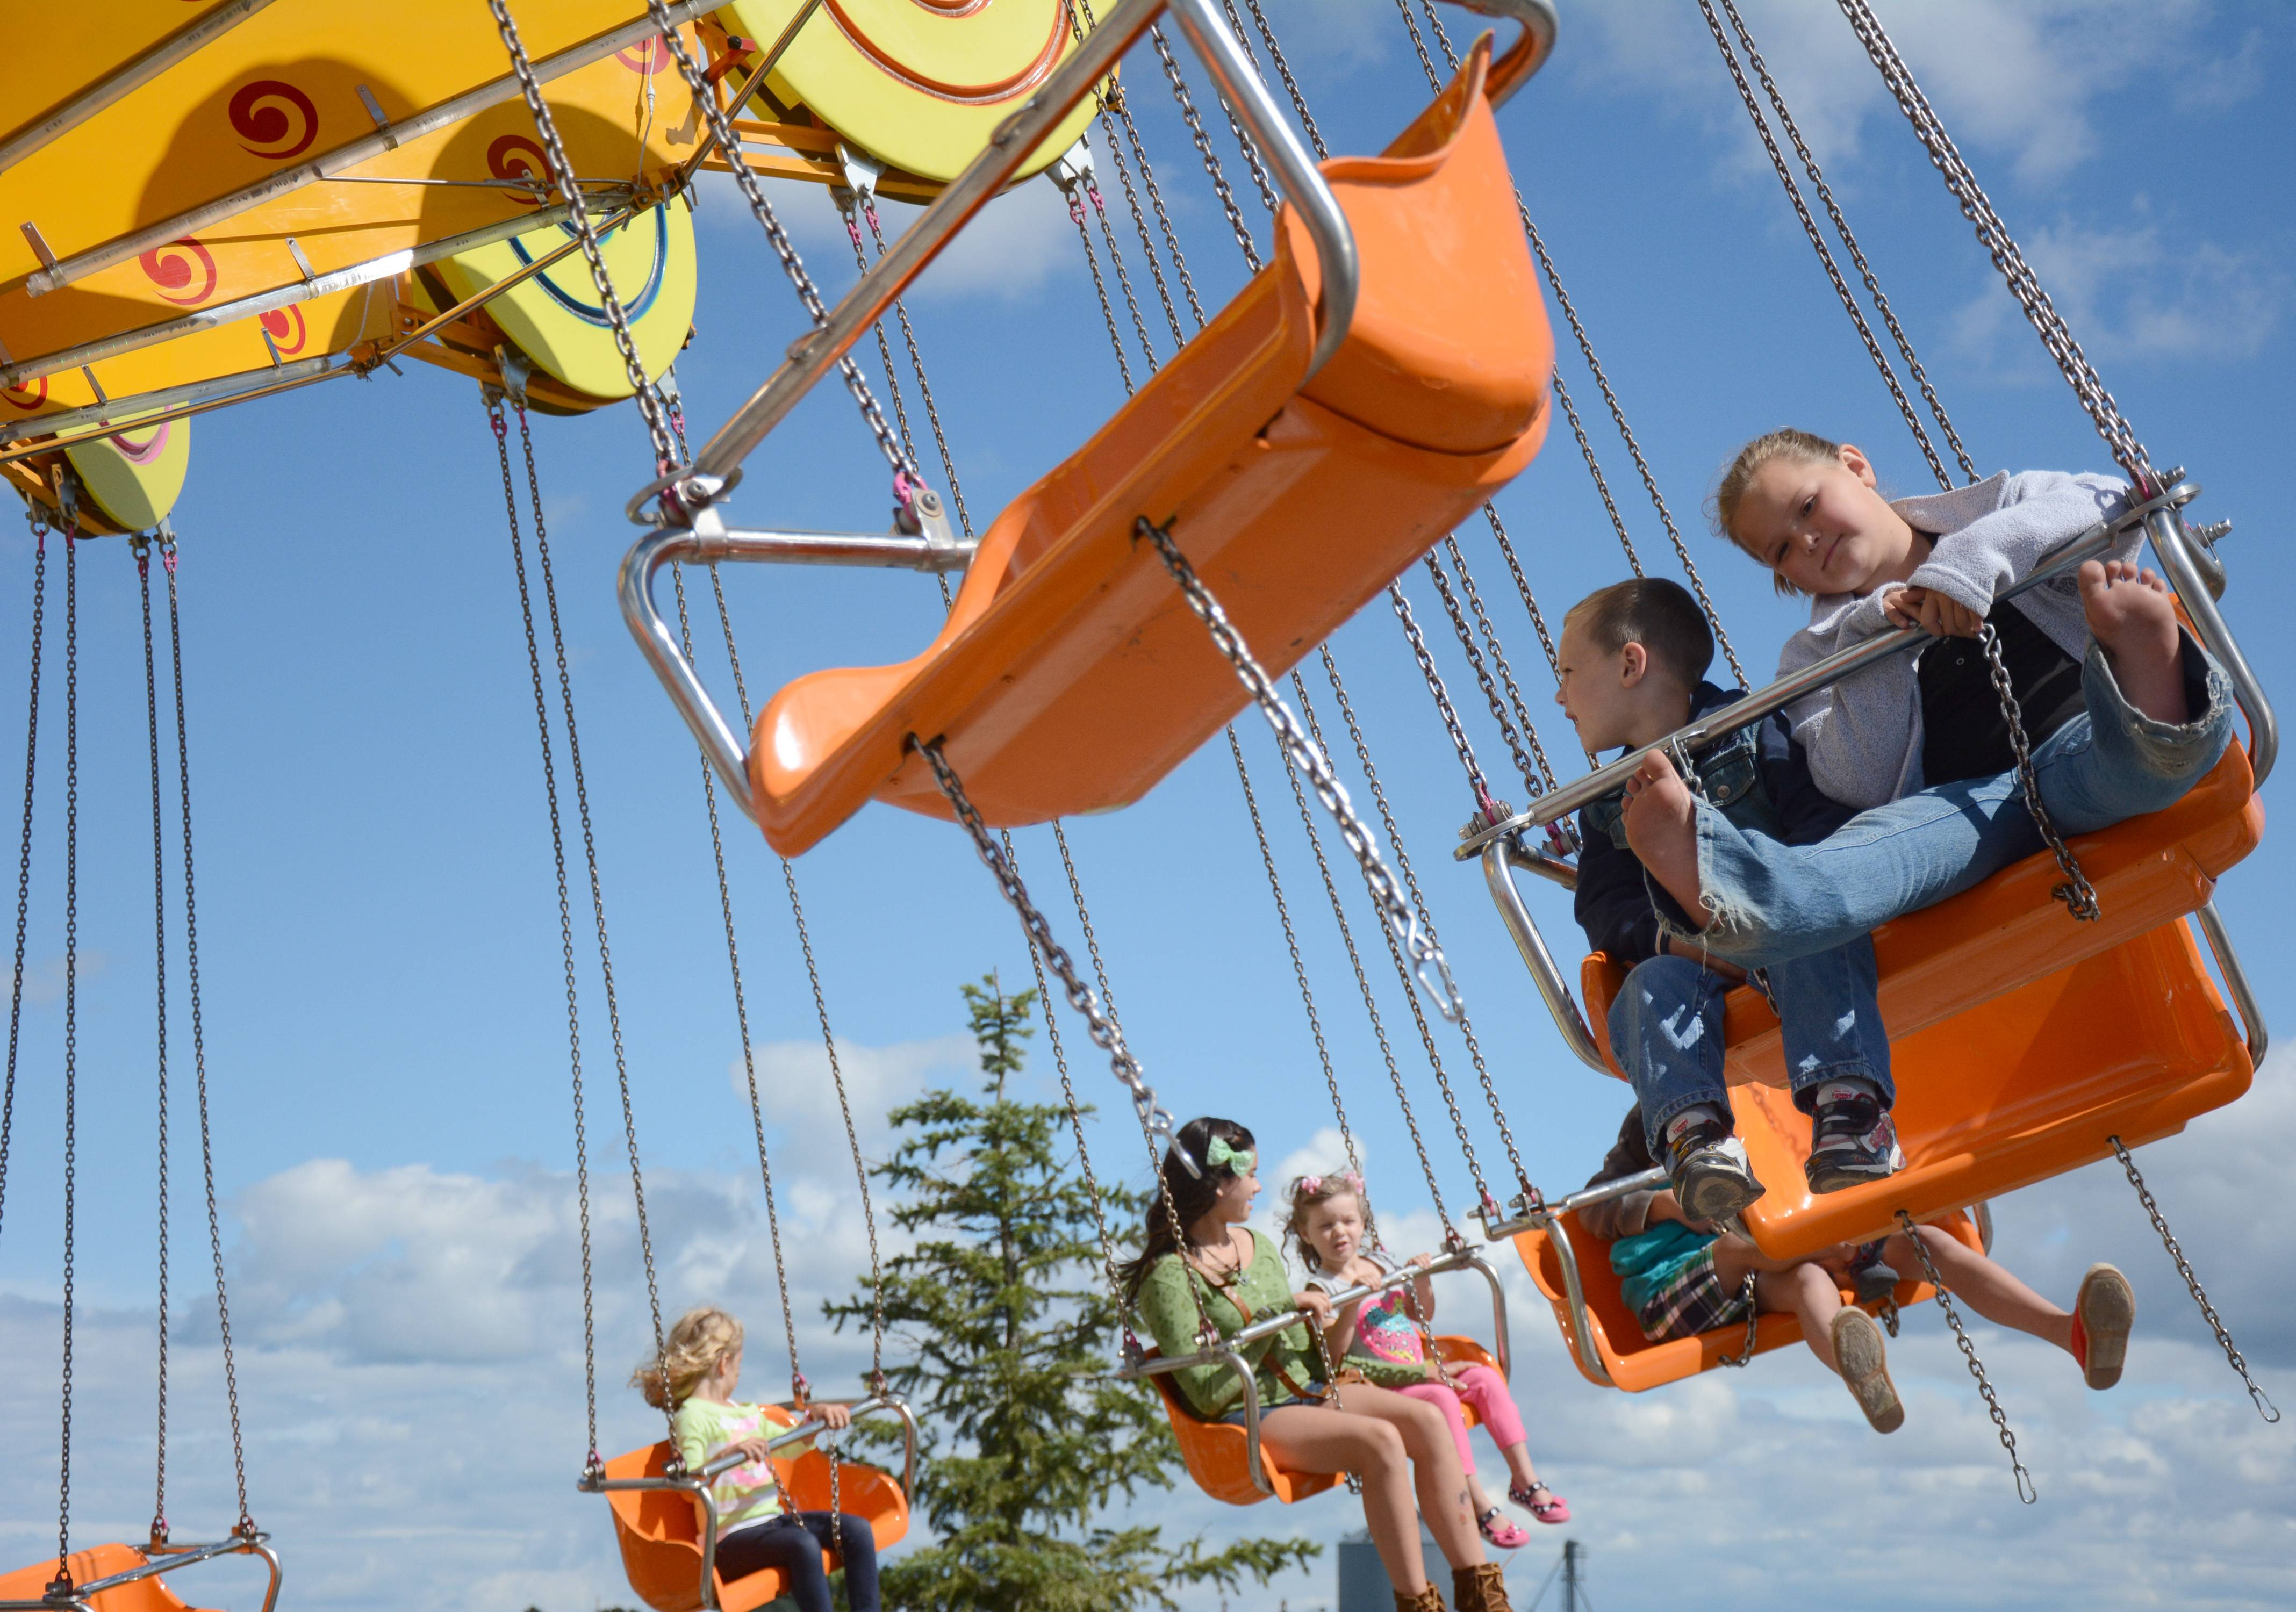 Kids can enjoy rides once again at this year's Lake County Fair in Grayslake.